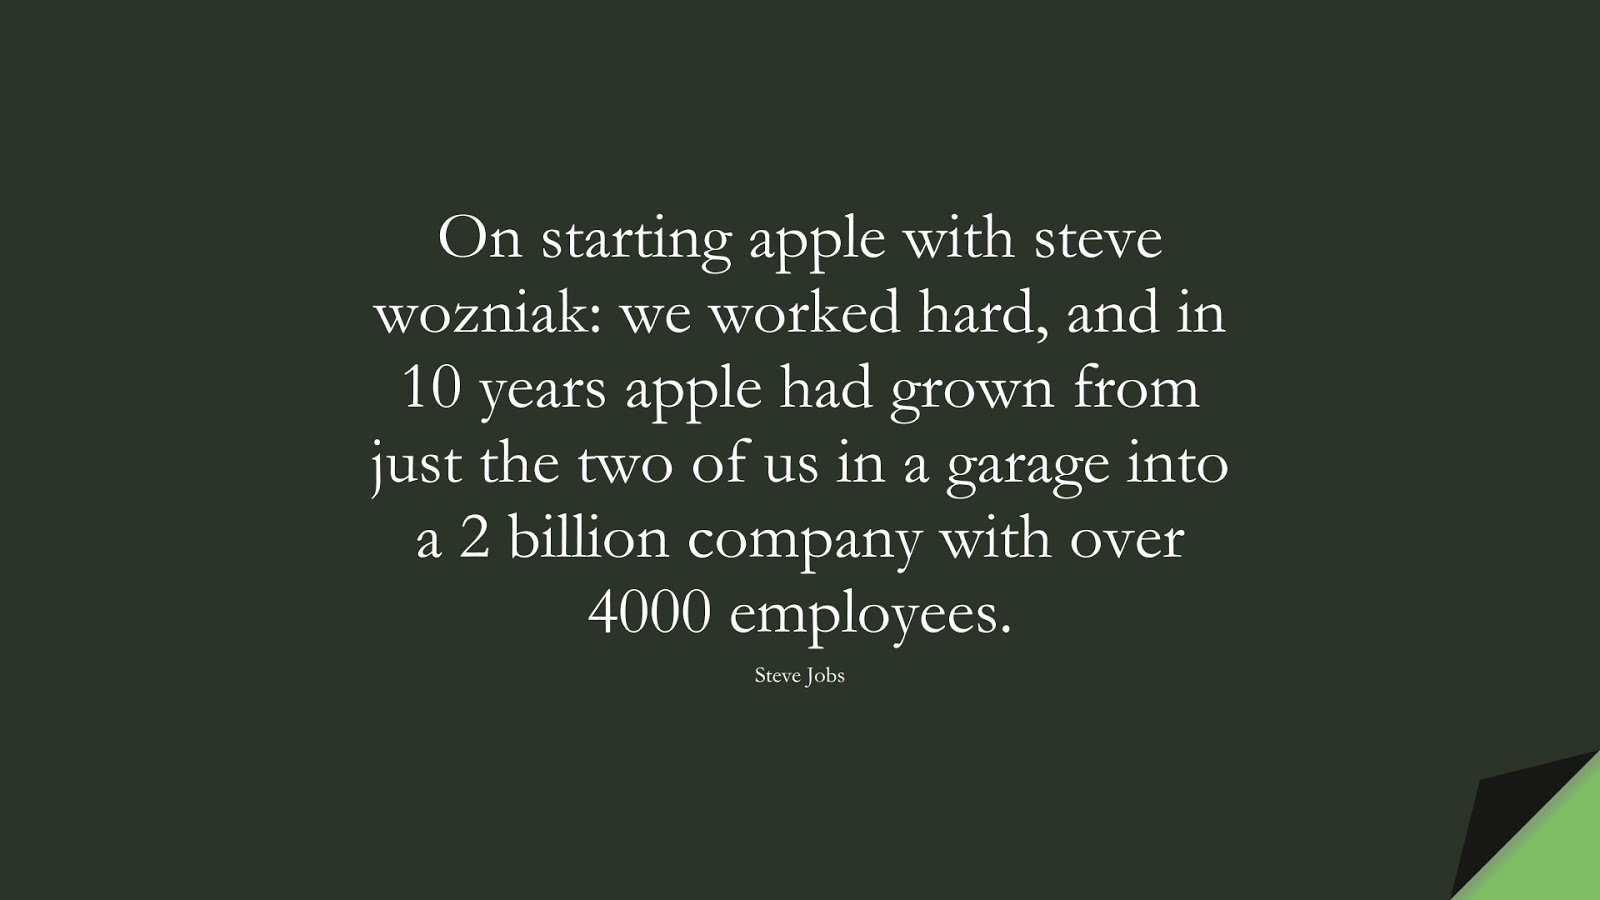 On starting apple with steve wozniak: we worked hard, and in 10 years apple had grown from just the two of us in a garage into a 2 billion company with over 4000 employees. (Steve Jobs);  #SteveJobsQuotes